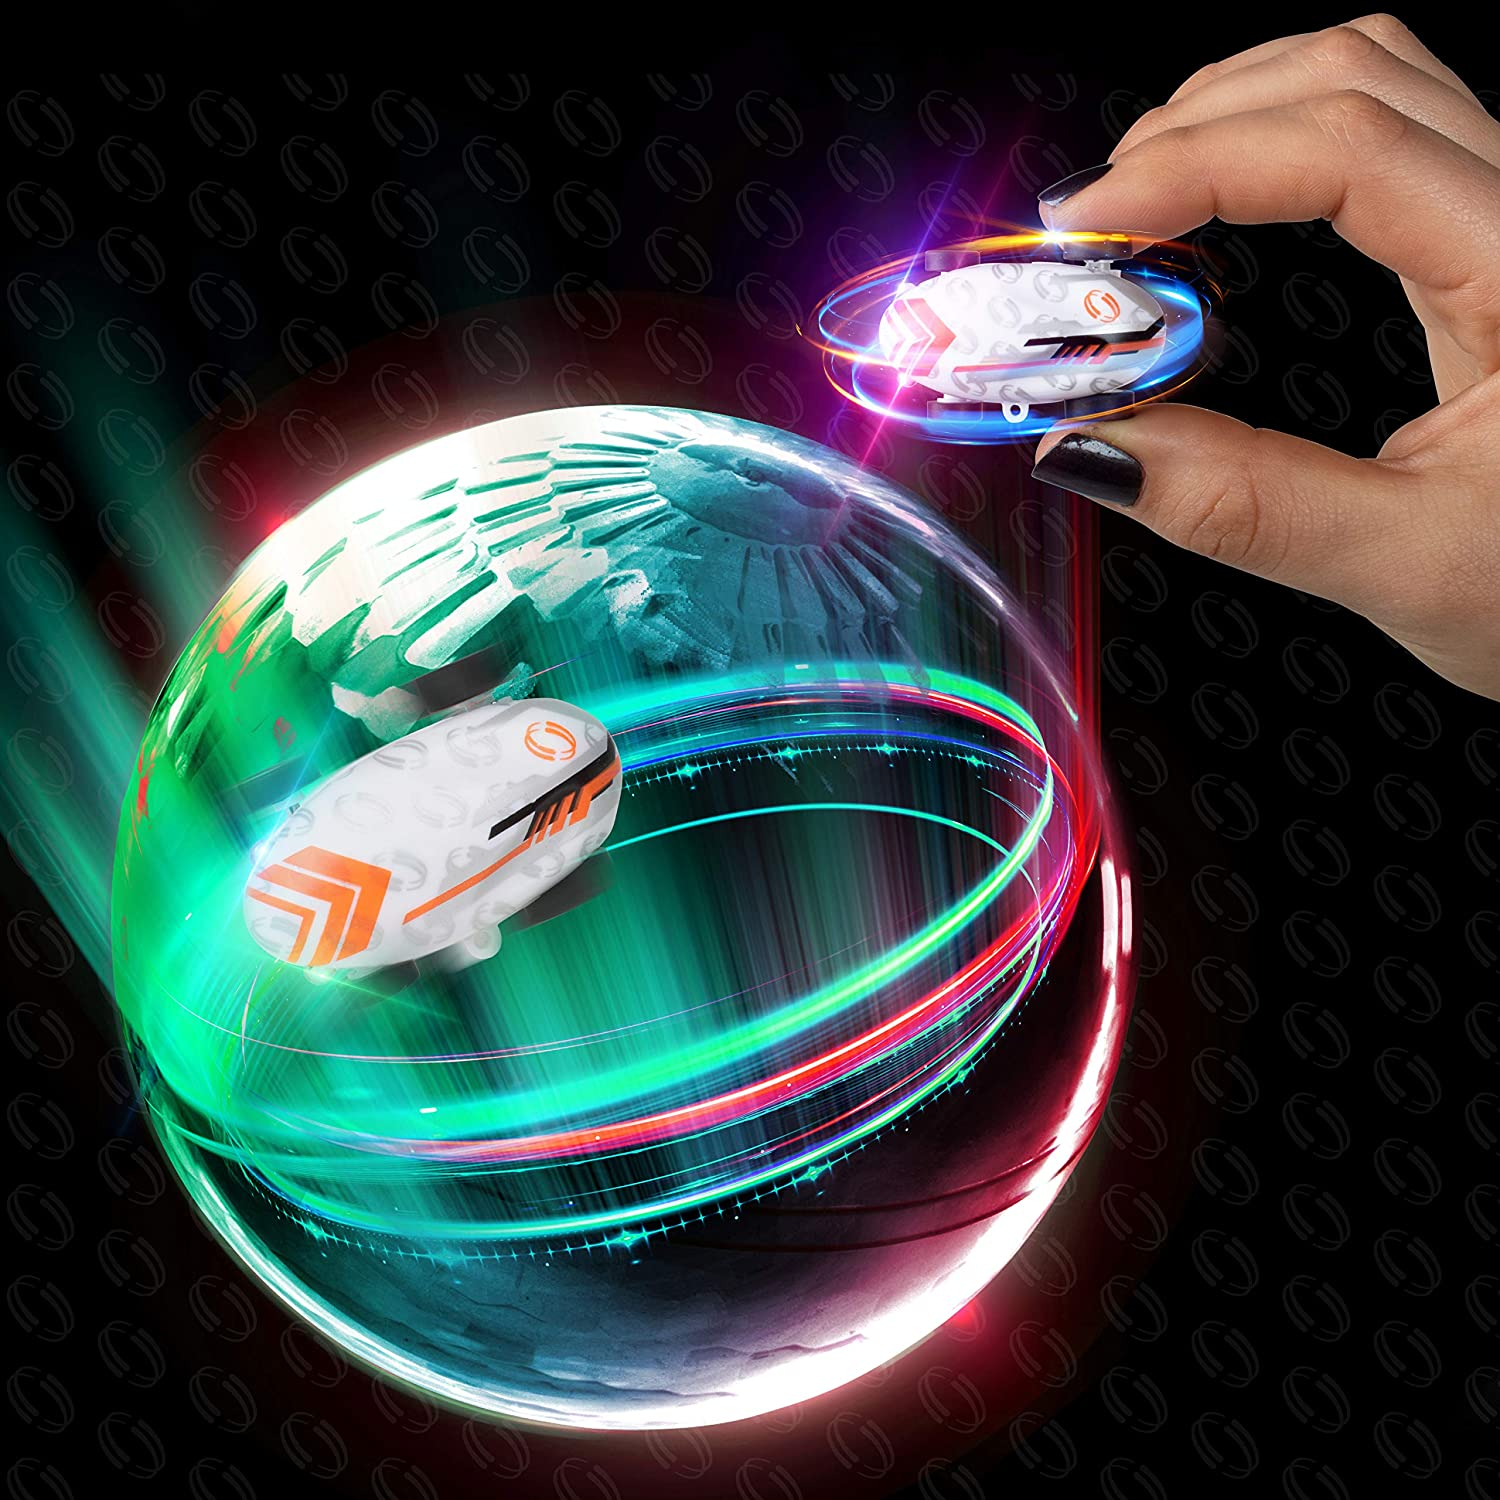 USA Toyz Micro Racer Mini Toy Cars - Whipz Pocket Racer Light Up Toys with Keychain and Stunt Car Ball, Micro LED Spinners Cars Toys for Kids, Boys or Girls